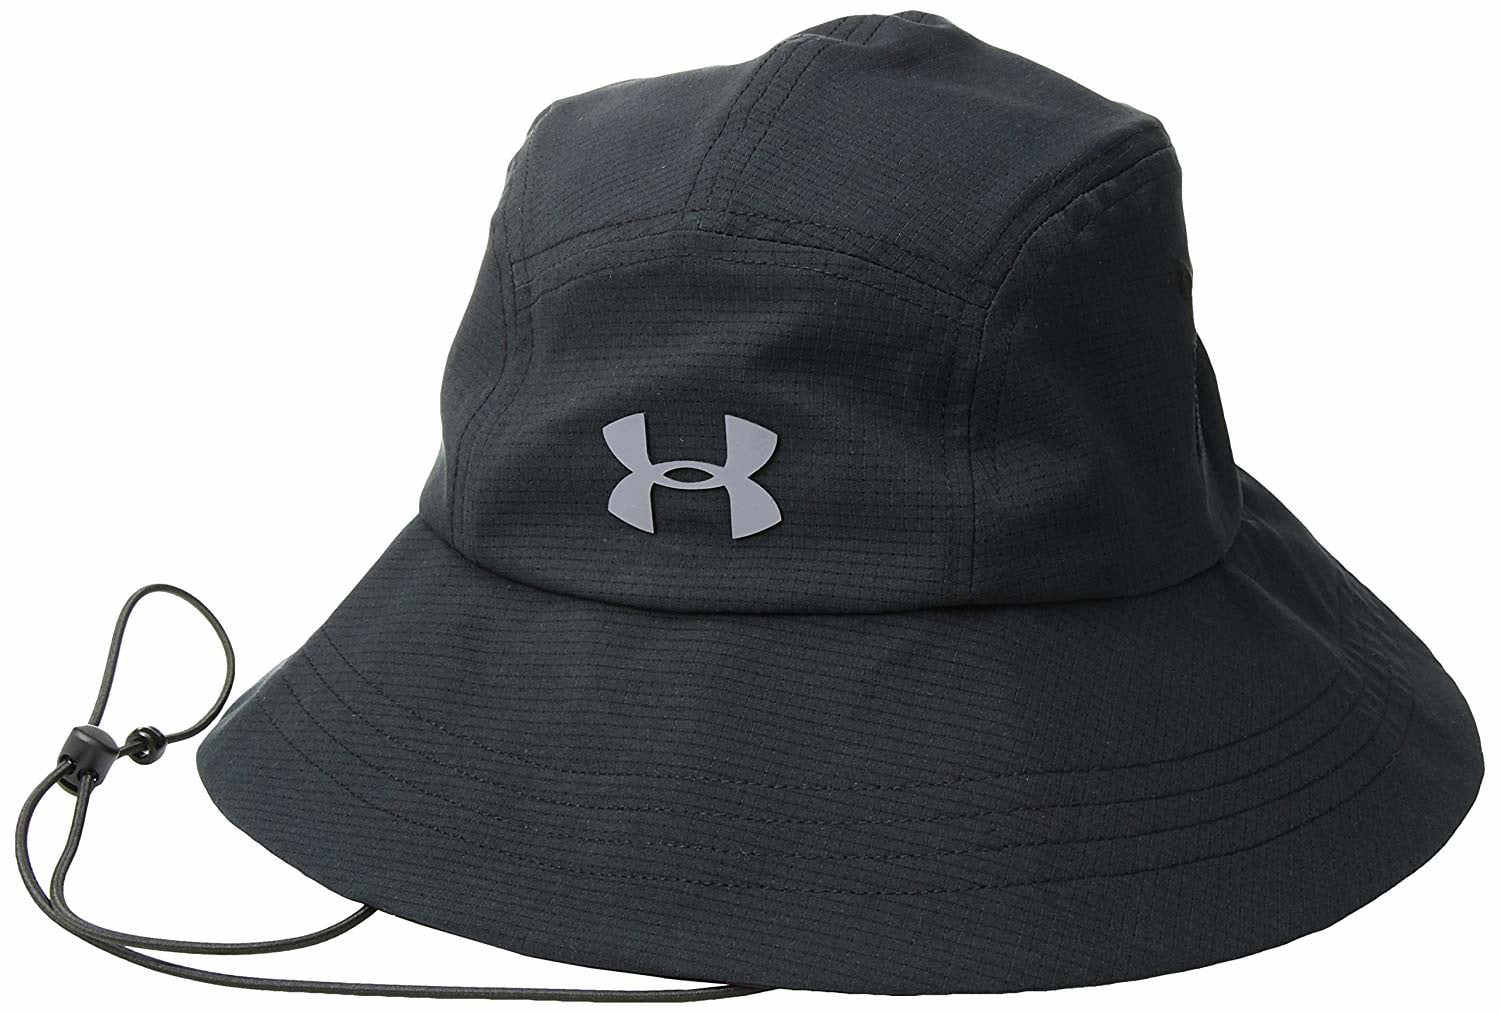 4434453bad4a2 ... spain under armour under armour mens armourvent warrior 2.0 bucket hat  walmart 2a513 d10d7